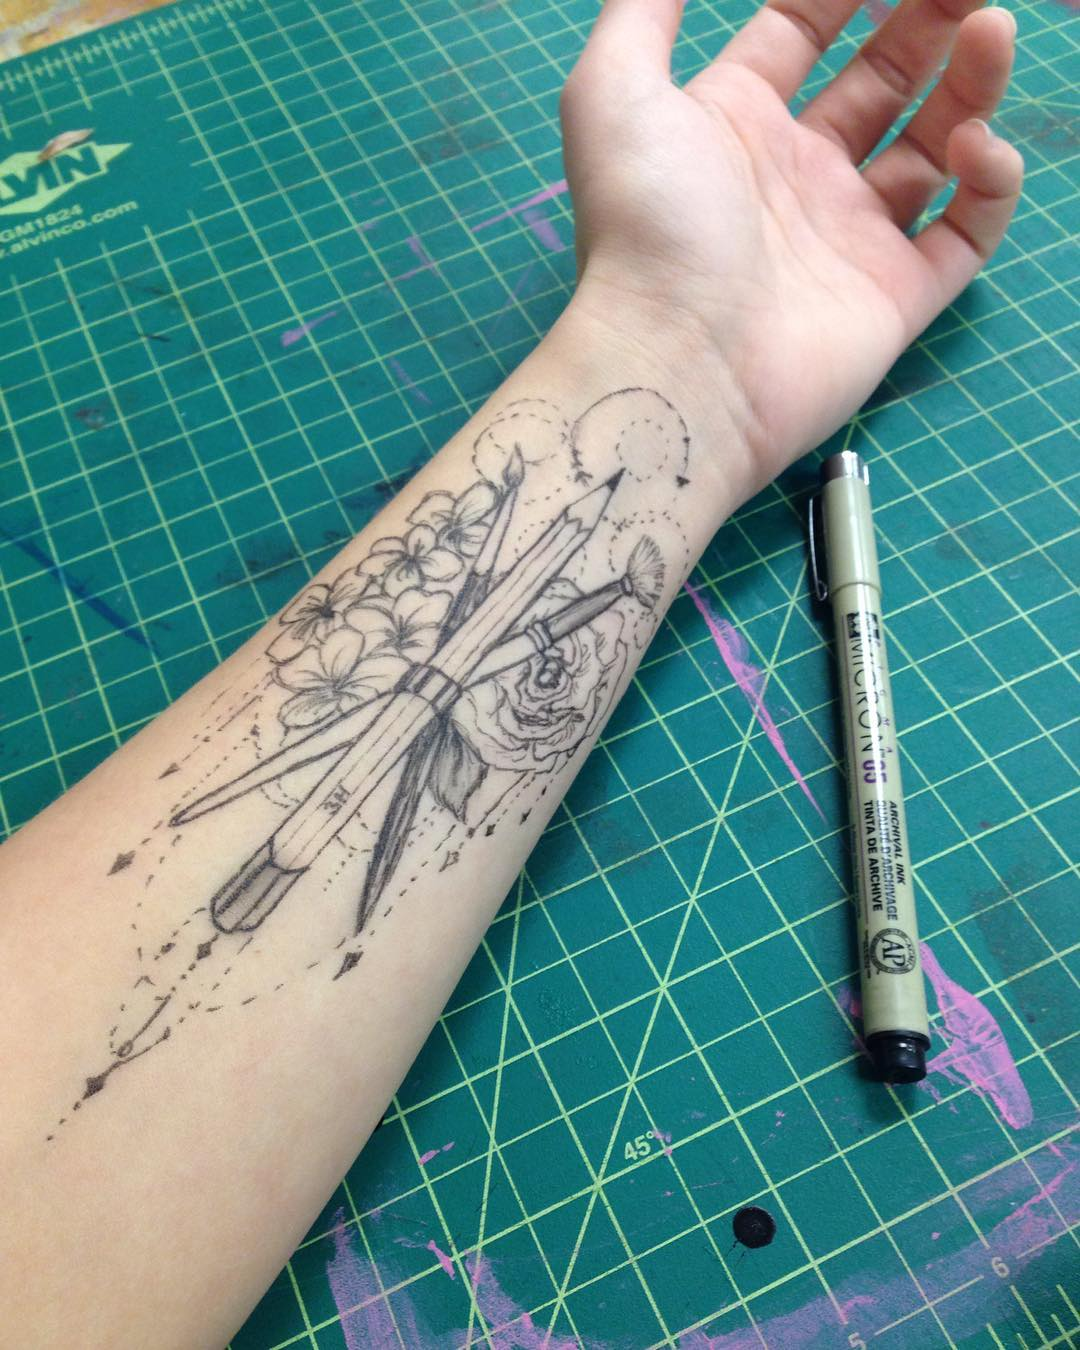 50 Marvelous Dr. Woo Tattoo Designs - Fine Body Art From A